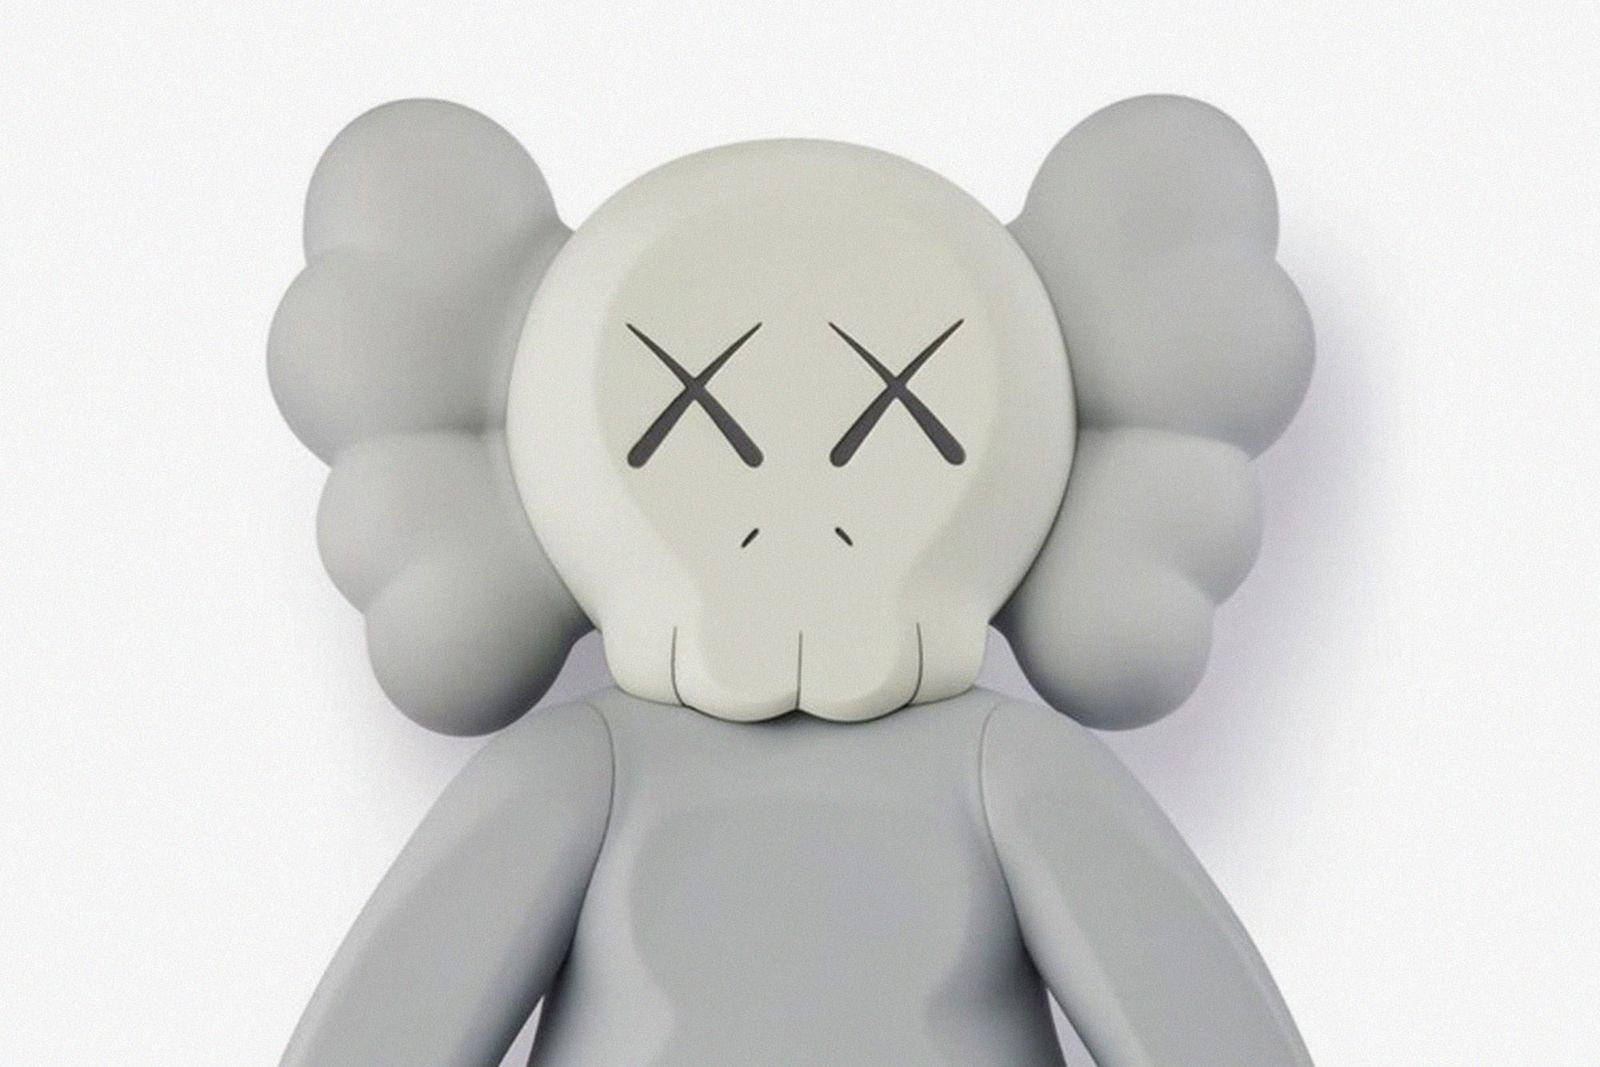 KAWS-Companion-2020-Figure-Grey-01